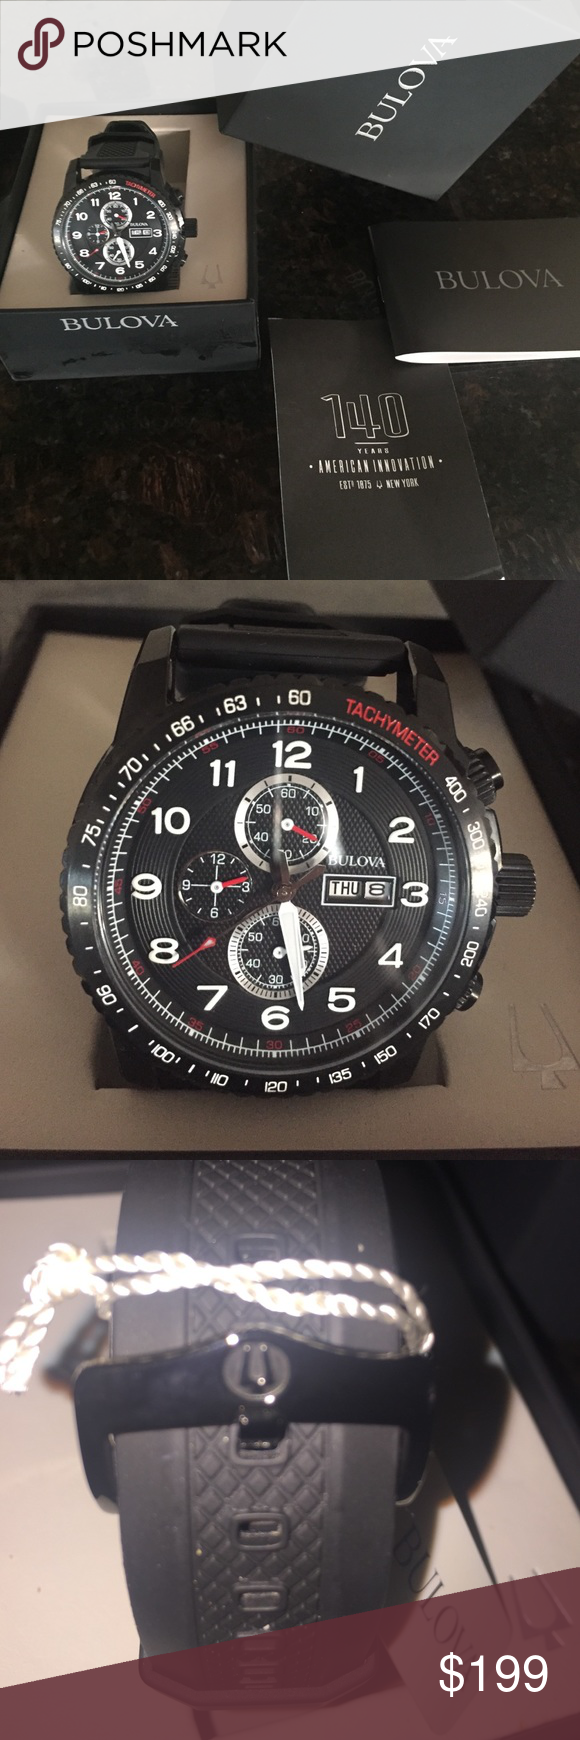 Bulova Men's Watch Only worn once. Comes with box & manual. Everything is fully functional. Bulova Accessories Watches